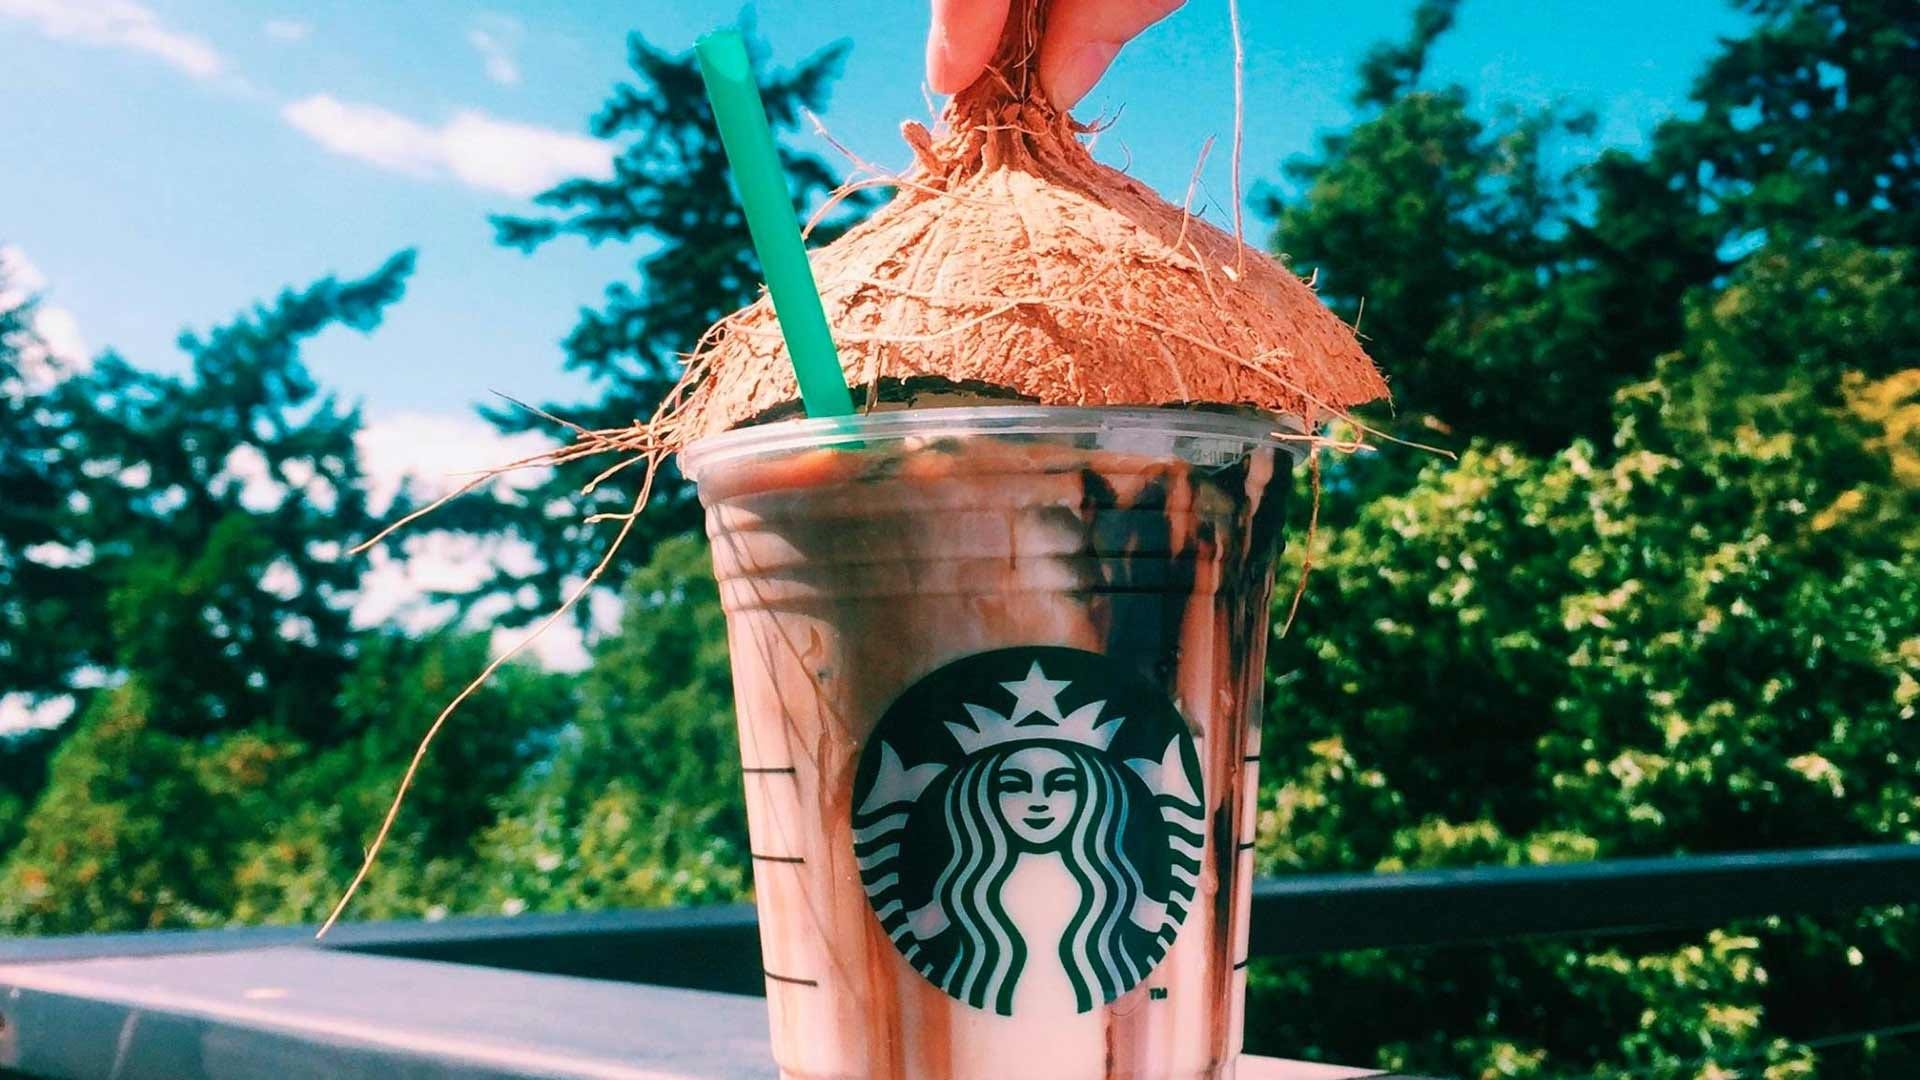 A Starbucks drink made with coconut milk.